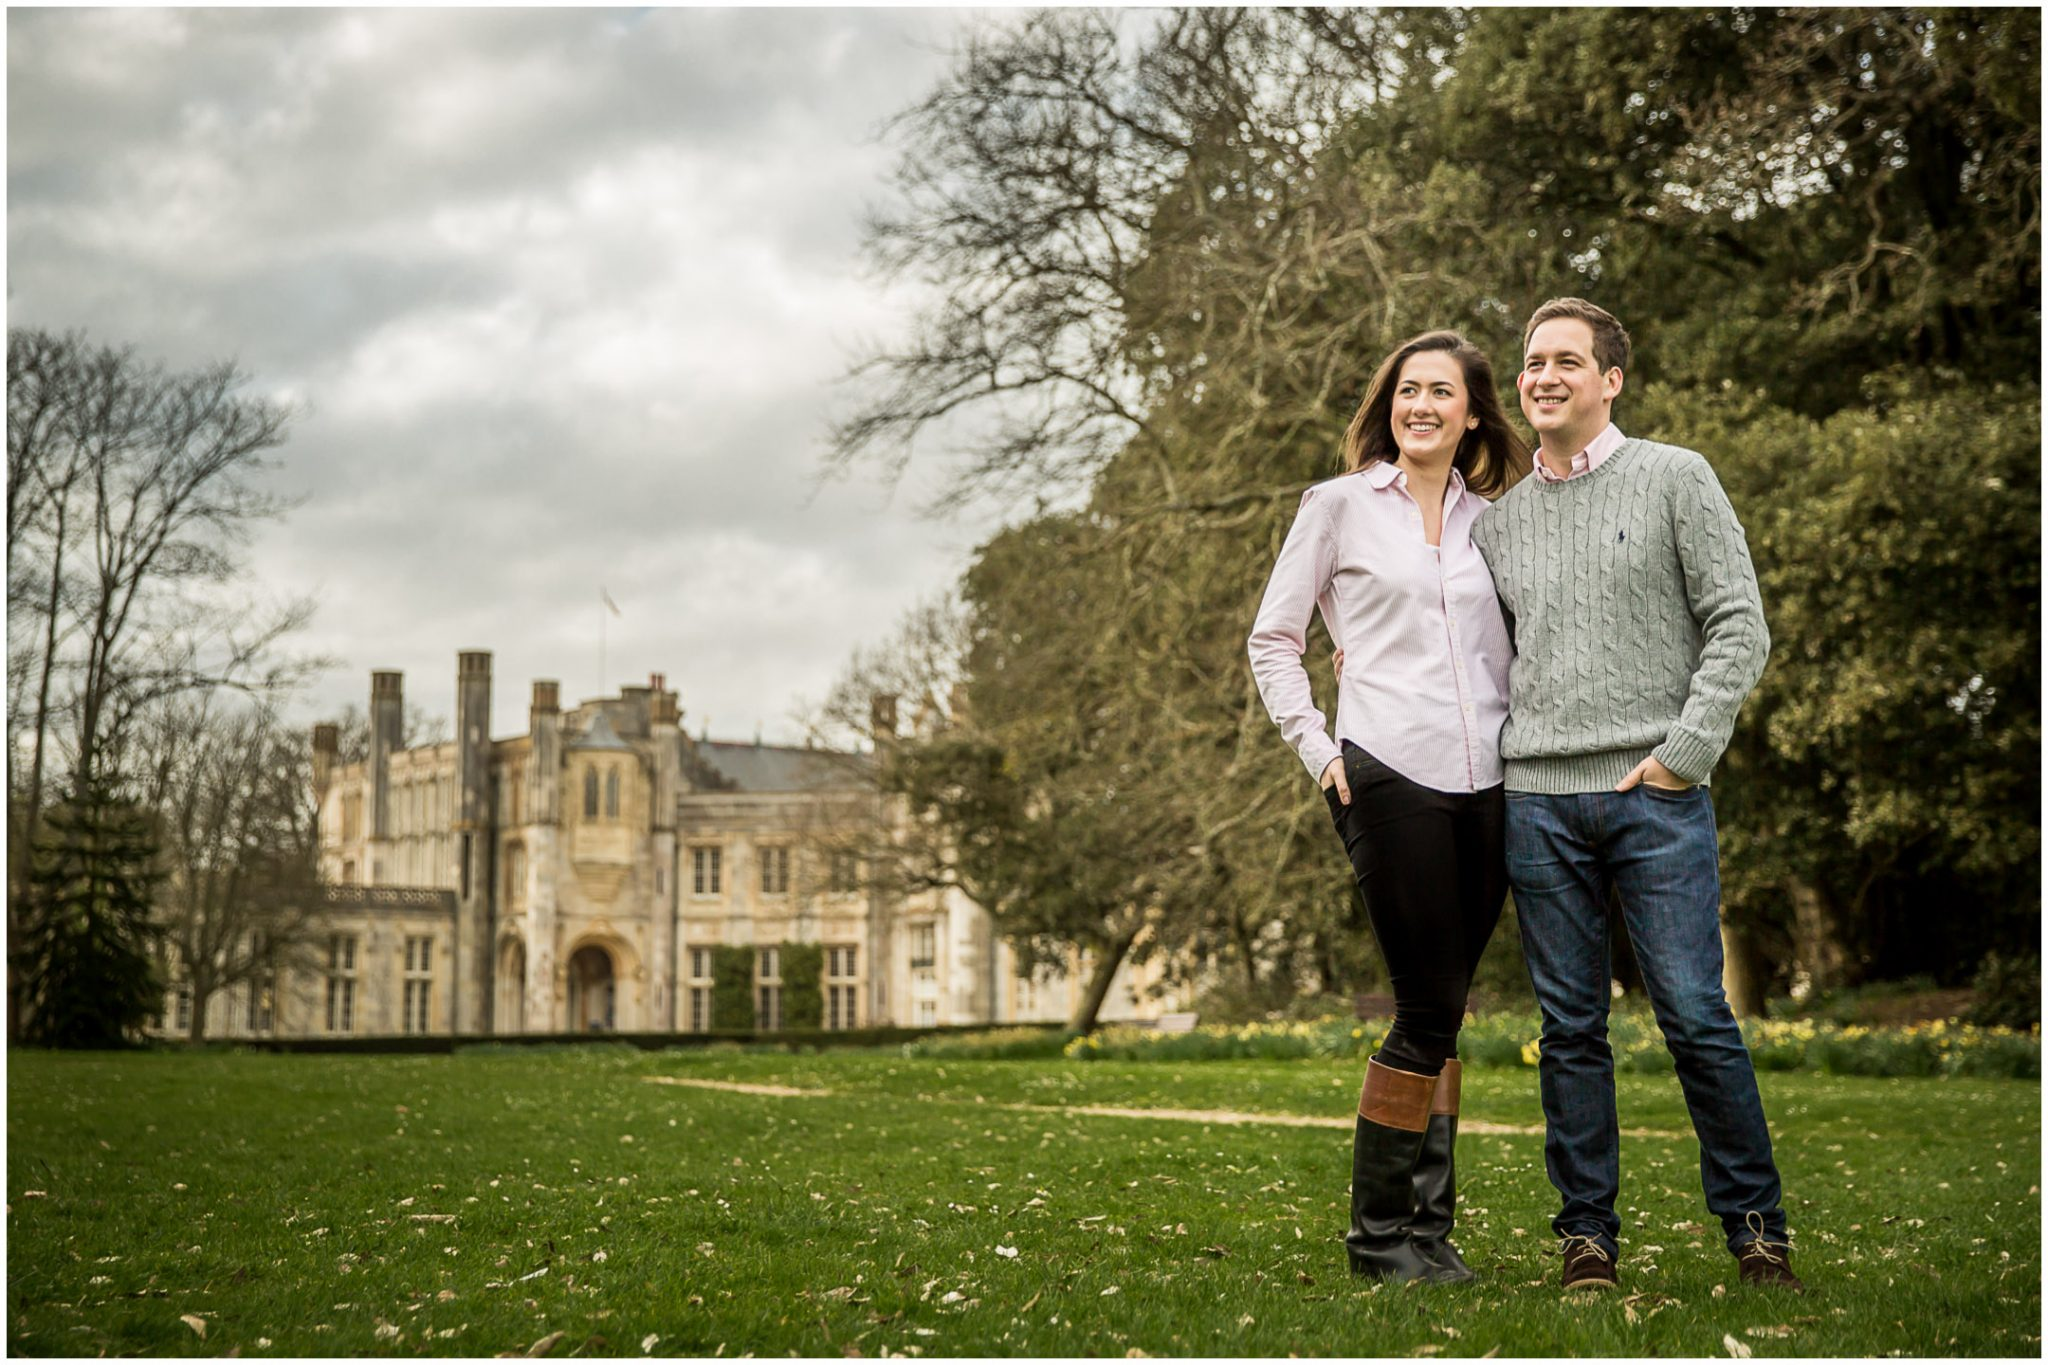 Couple stood in front of Highcliffe Castle in Hampshire as part of engagement photoshoot